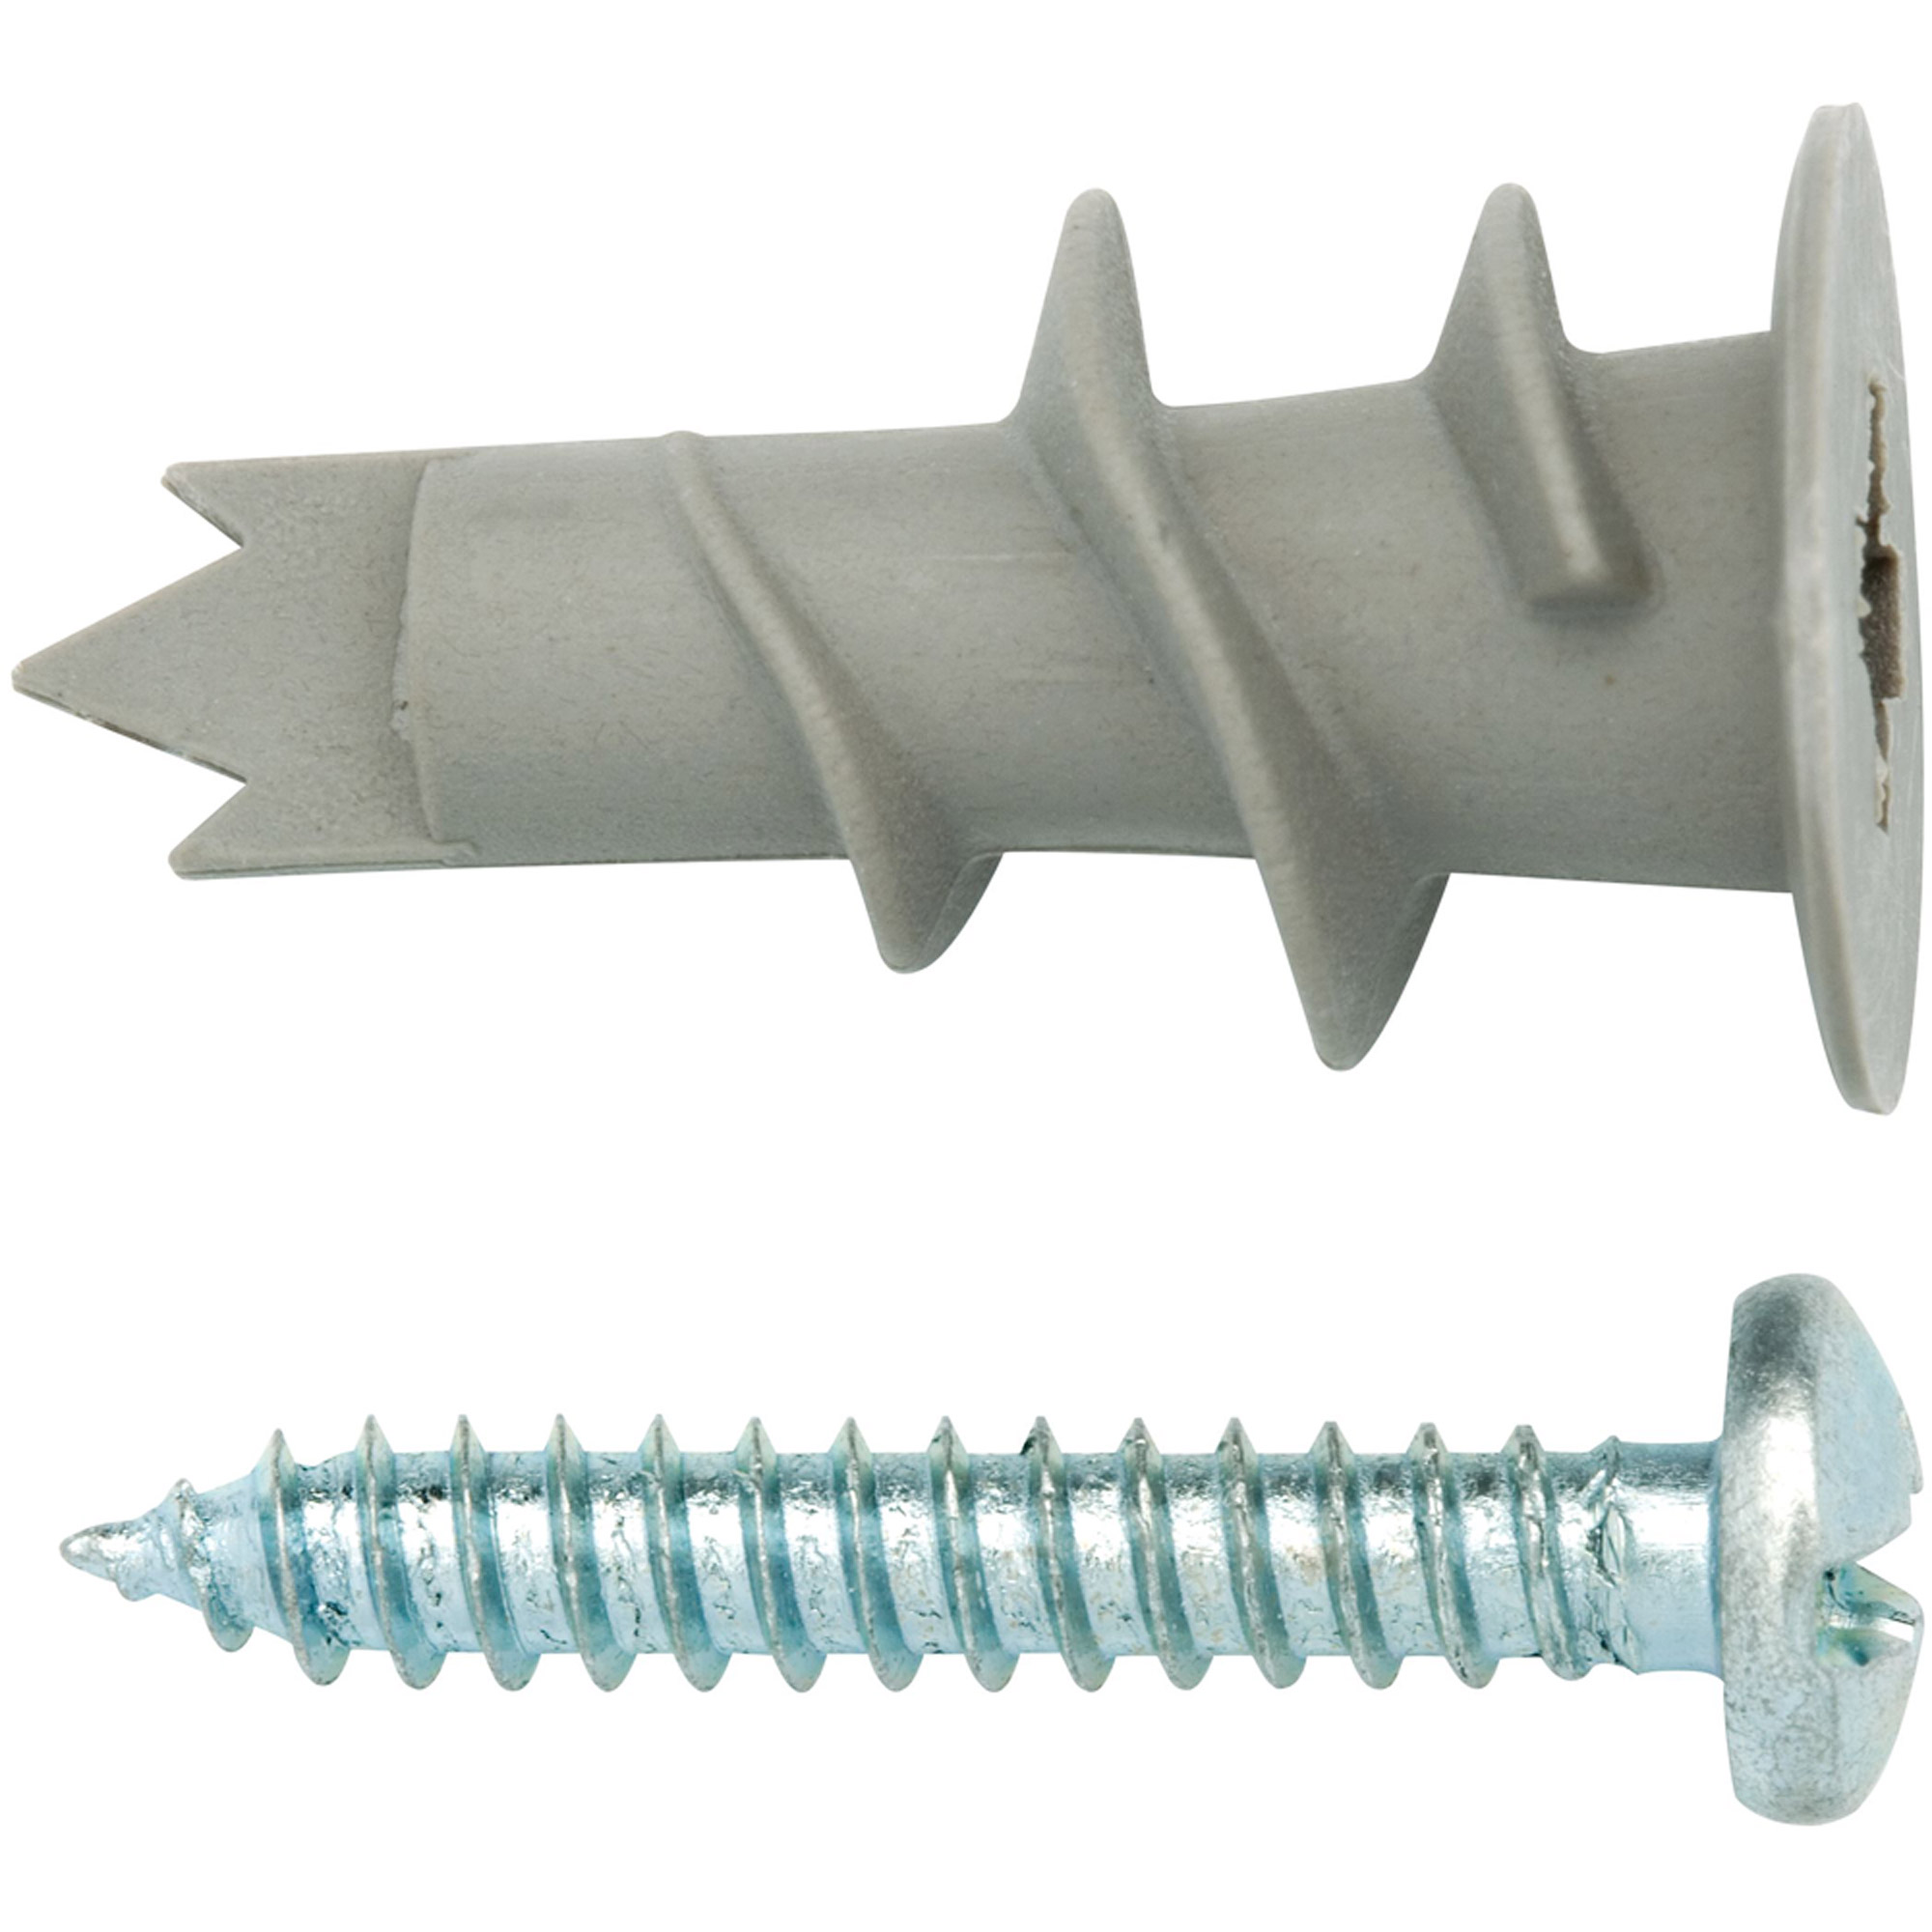 Arrow 10-Piece Self-Drilling Drywall Anchors and Screws